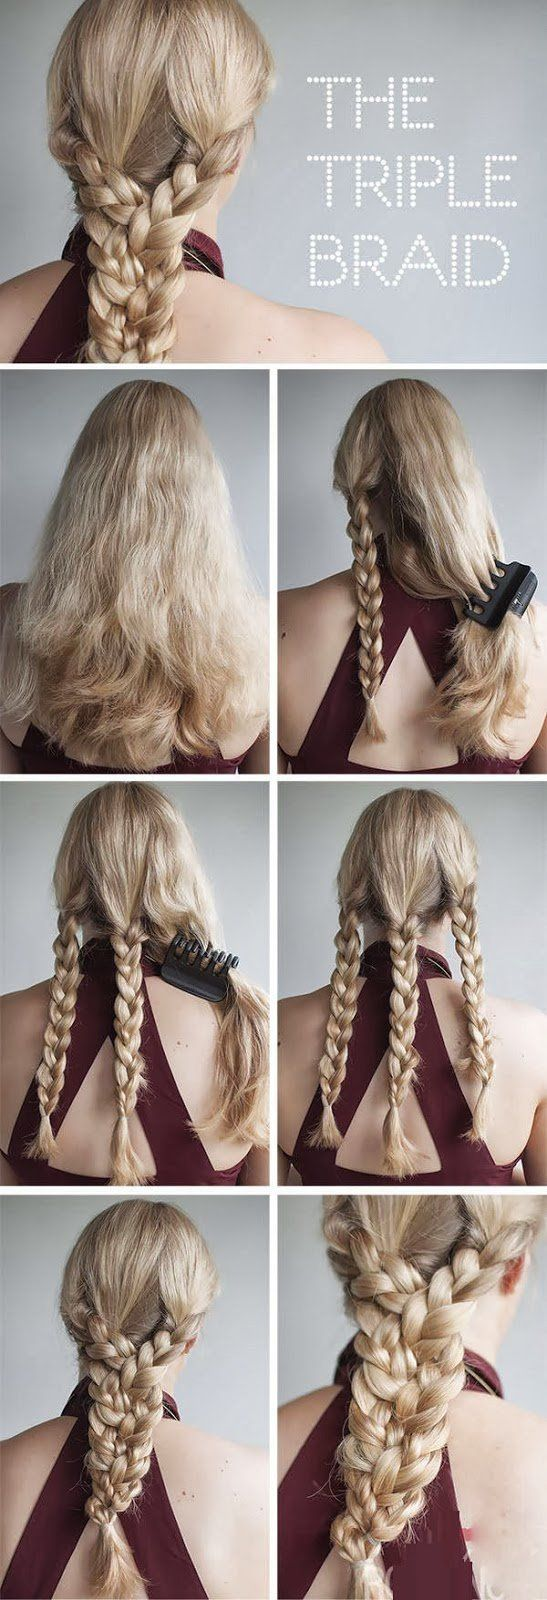 Best Braids Step By Step Ideas On Pinterest Step By Step - Braid diy pinterest